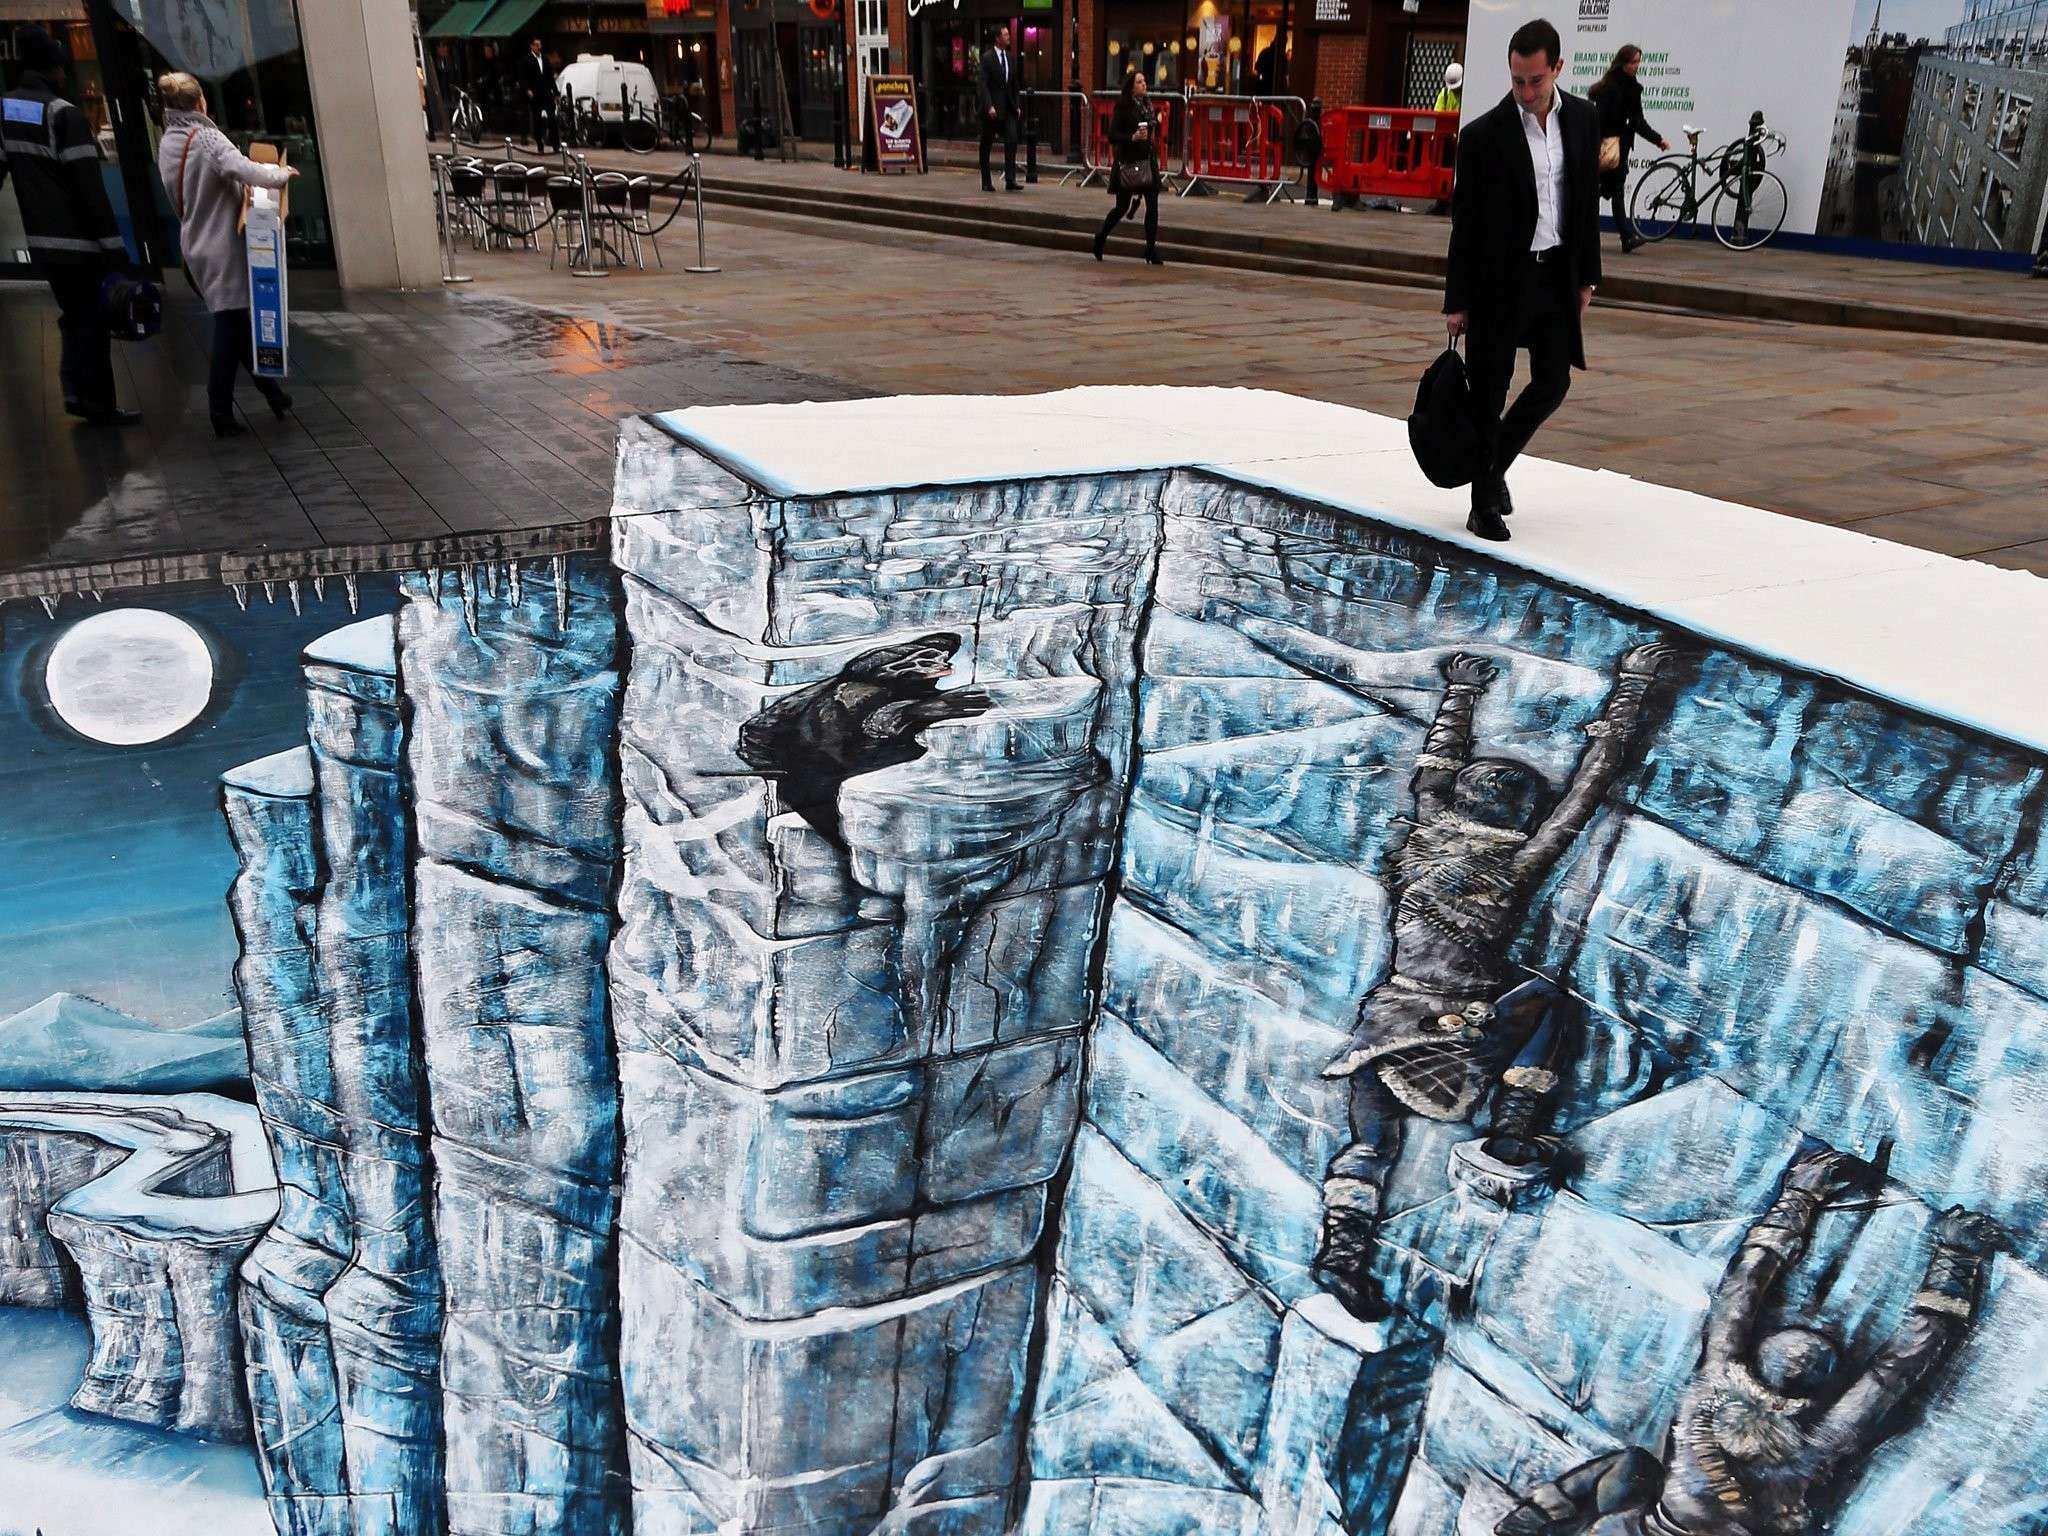 Game of Thrones Wall recreated as 3D street art